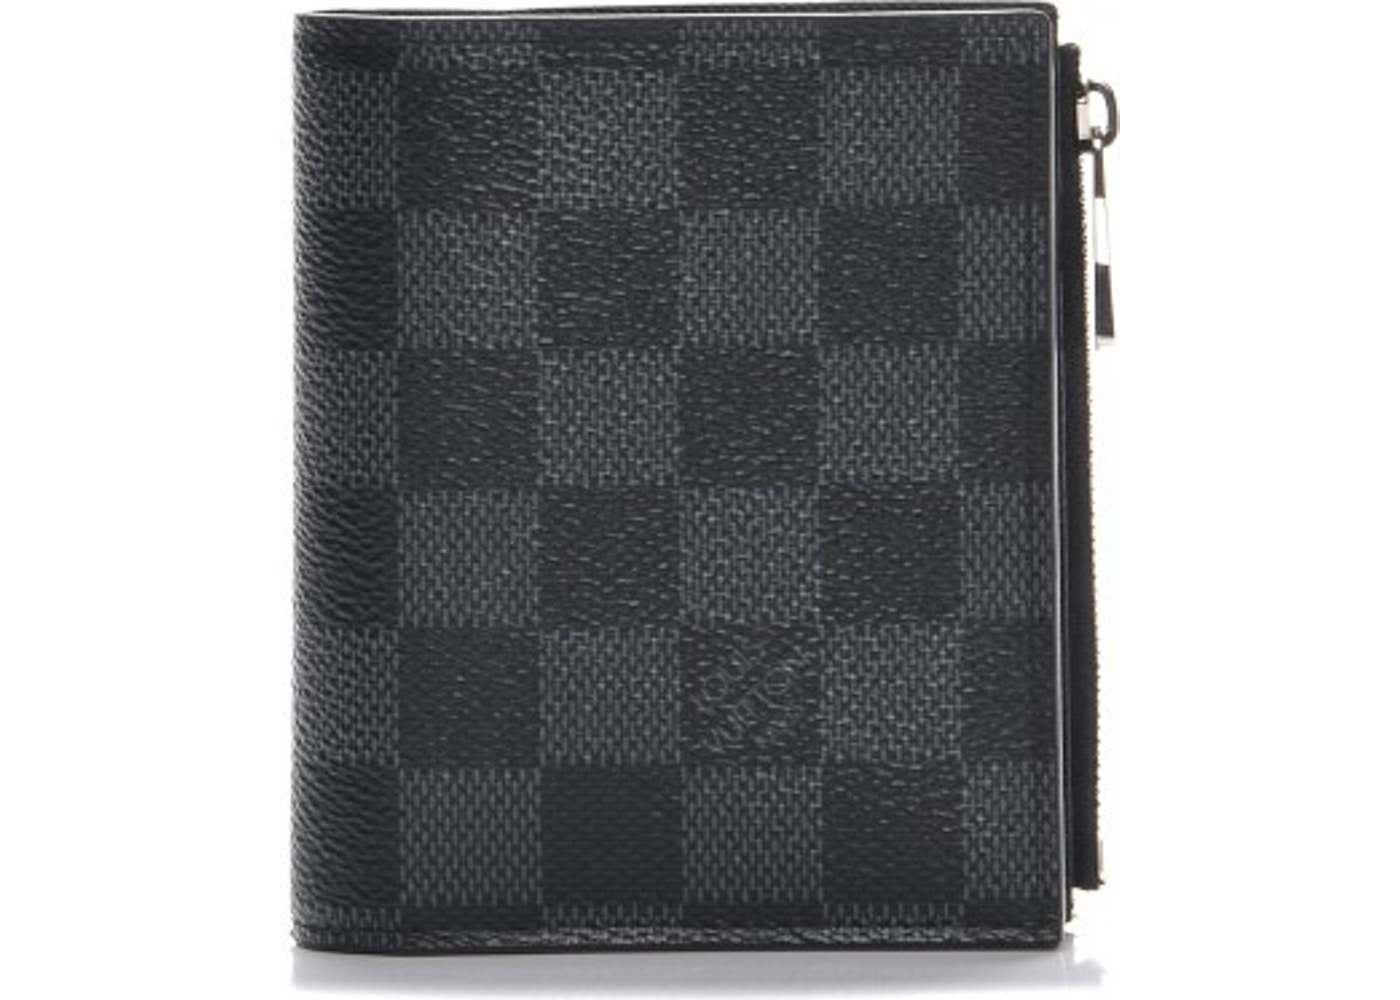 777b7fbcbbd5 Louis Vuitton Smart Wallet Damier Graphite. Damier Graphite